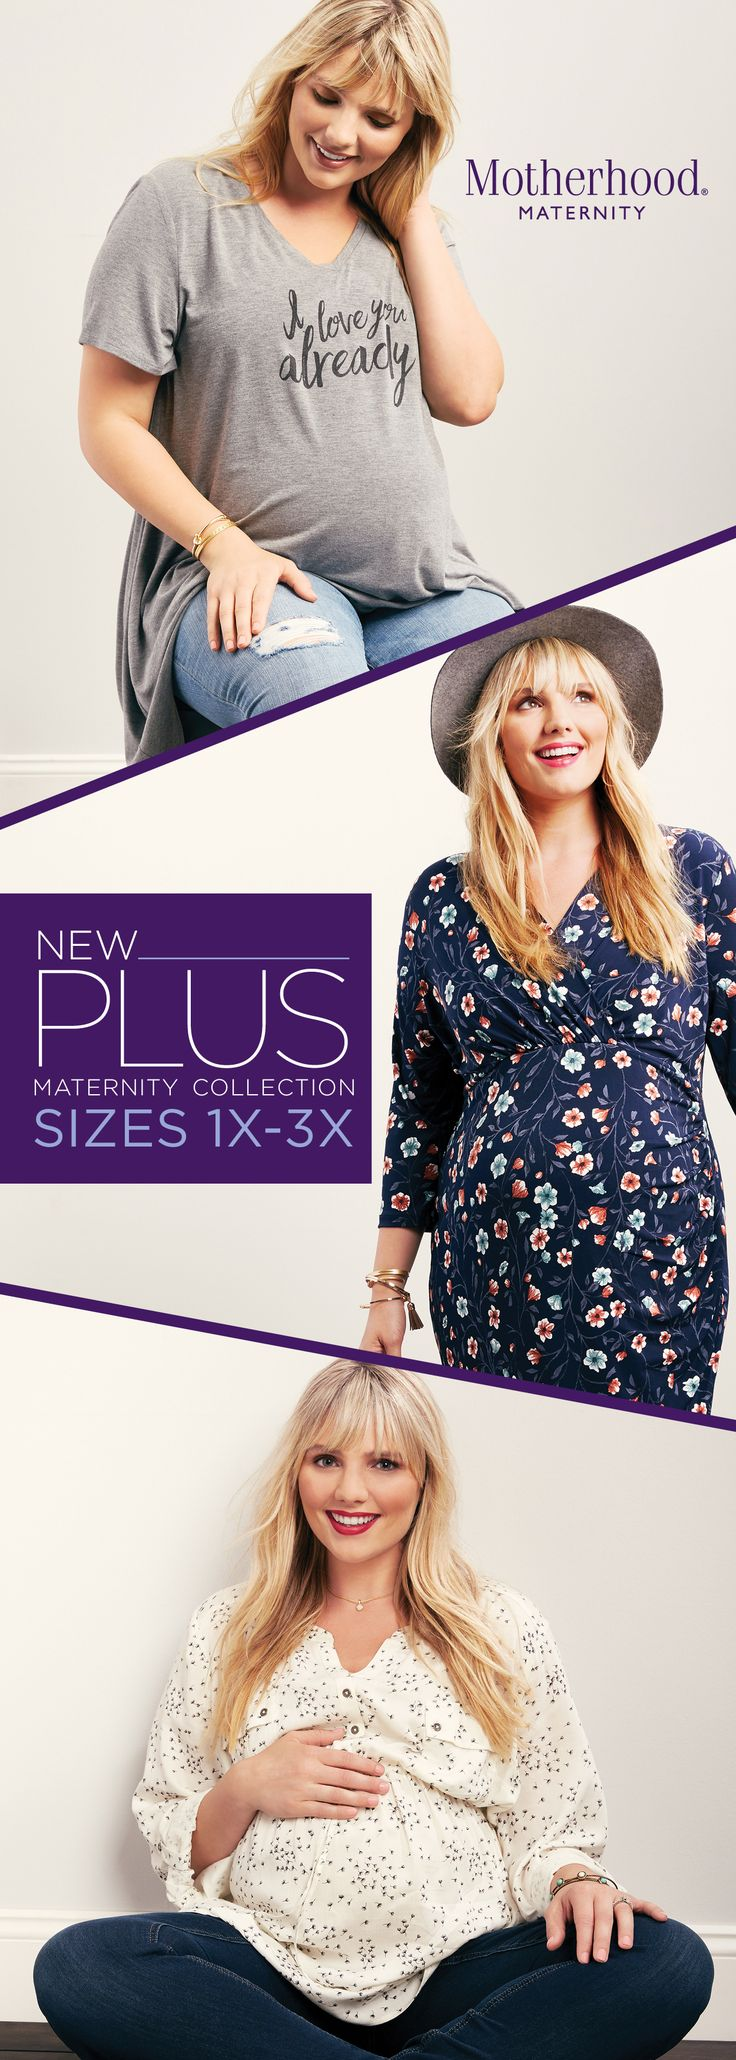 Our new line celebrates your curves! Shop our updated fit Plus collection only at Motherhood Maternity, in stores and online.